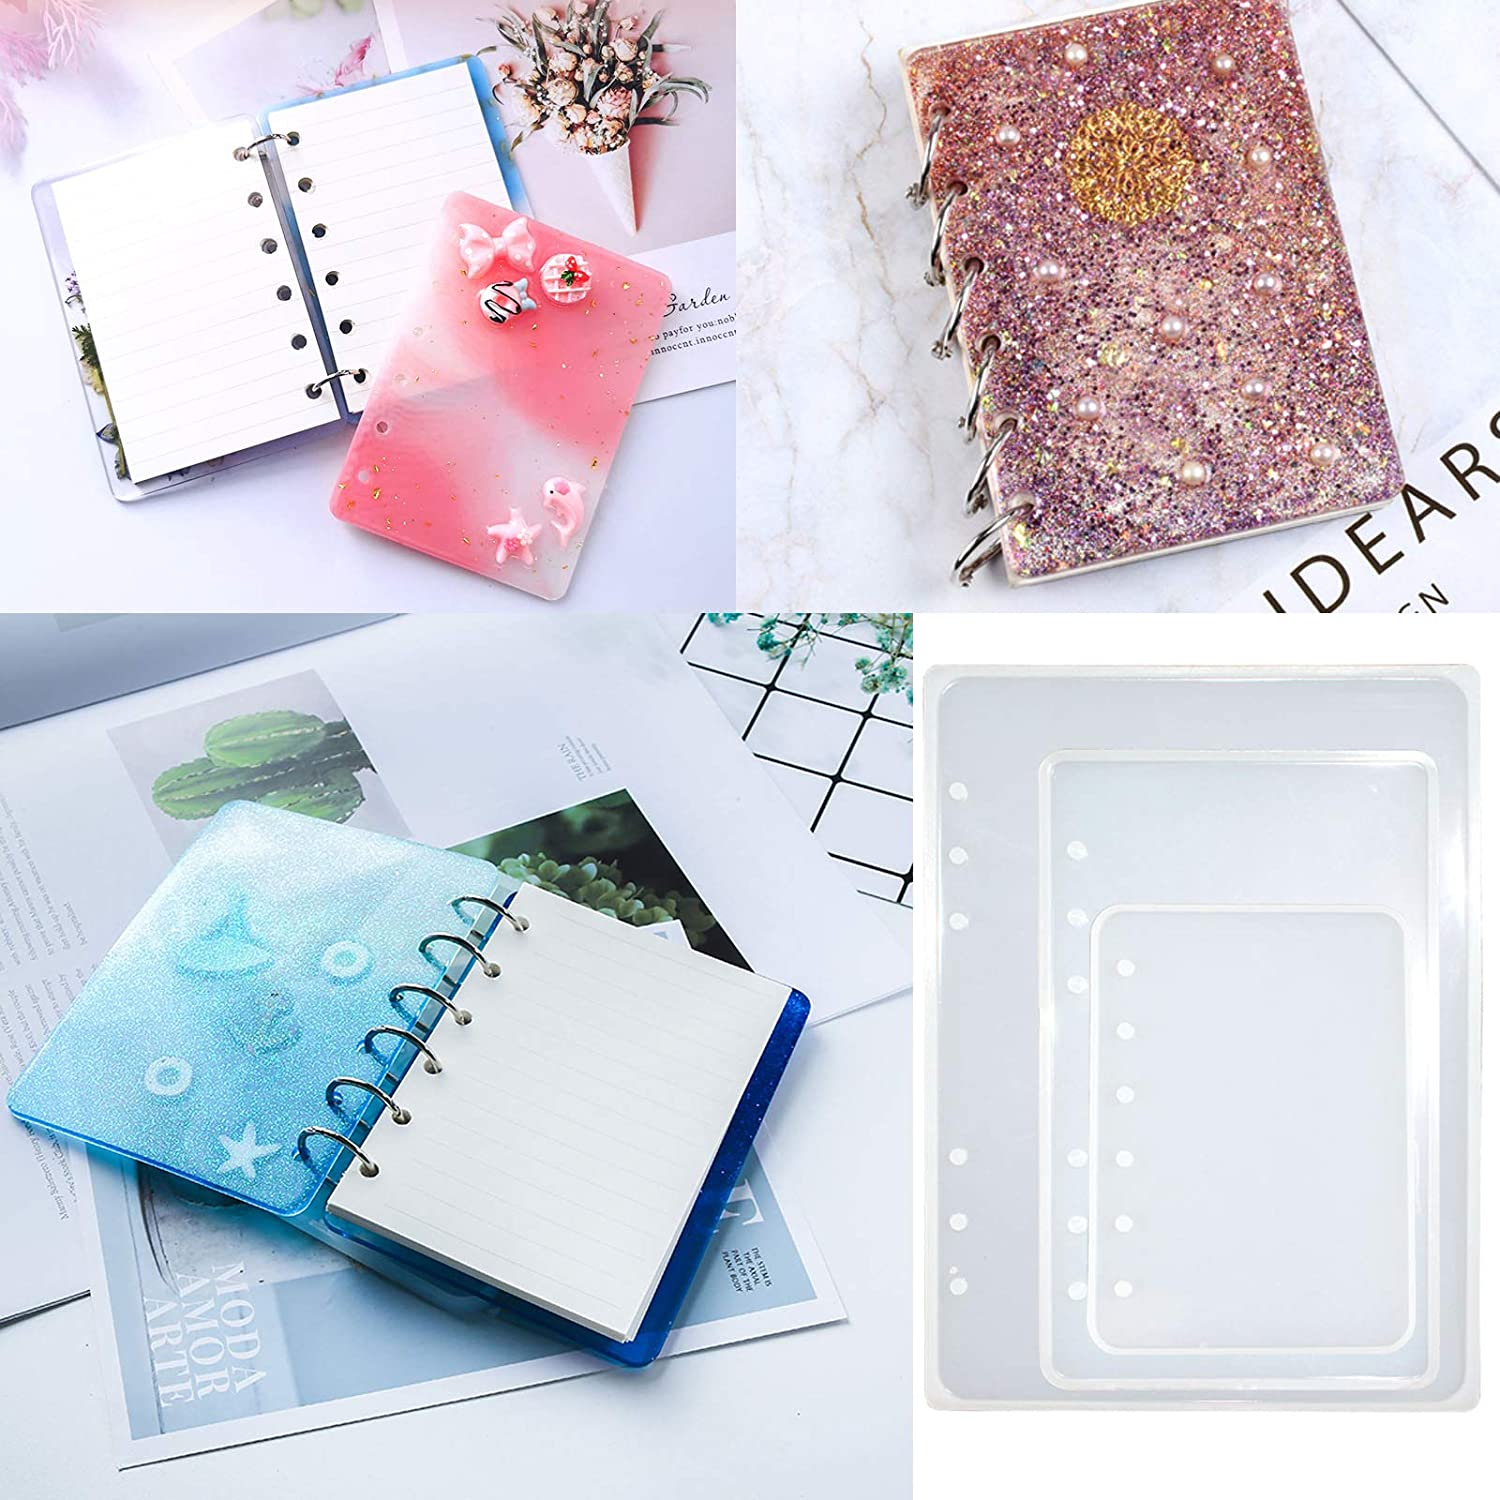 3 Pieces Notebook Cover Resin Casting Molds A5 A6 A7 Book Silicone Molds for Notebook Epoxy Resin DIY